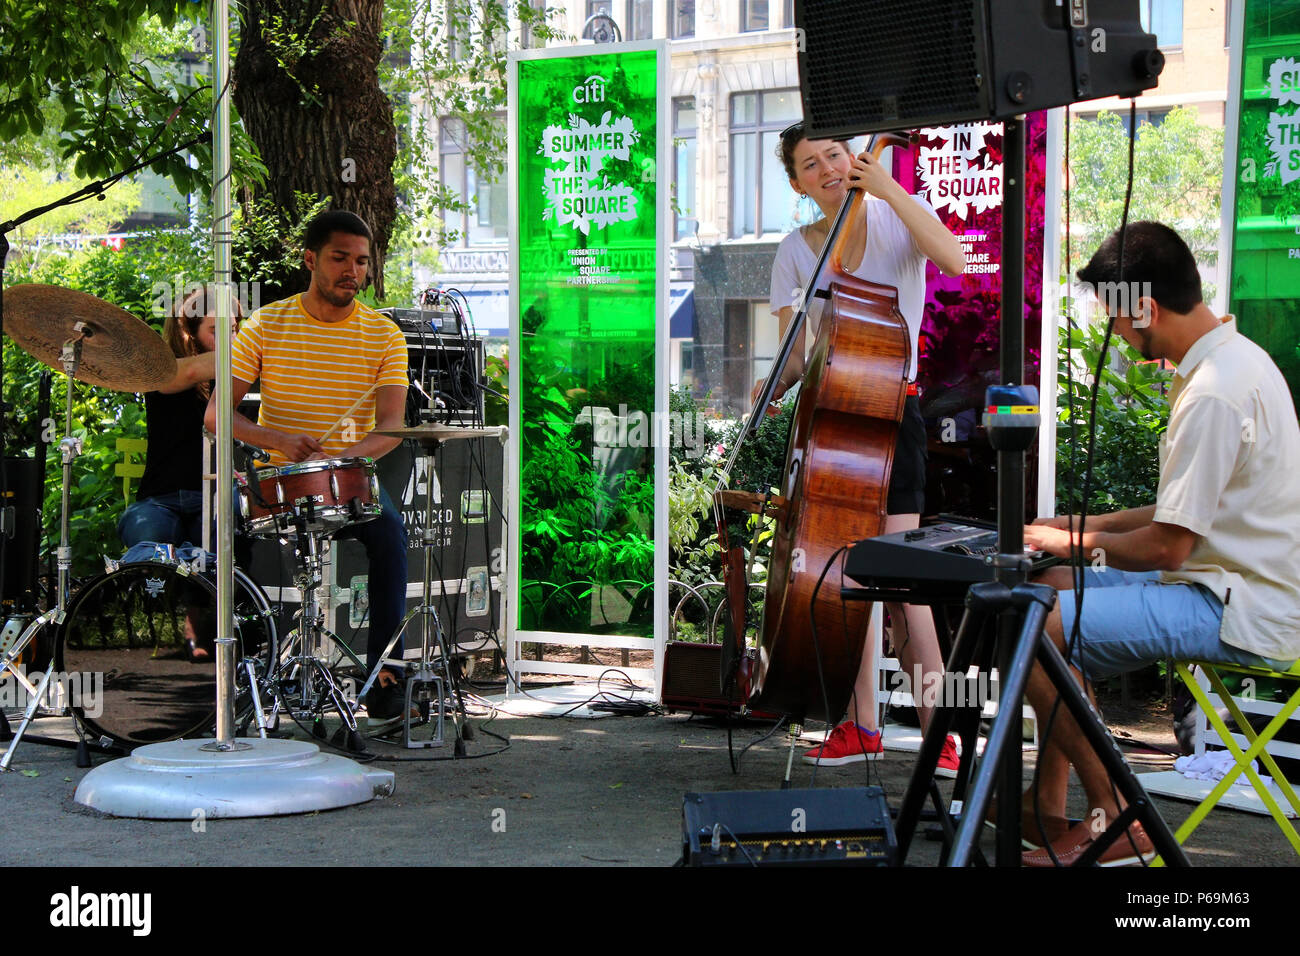 NEW YORK, NY - JUNE 22: Jazz trio performs live as a part of Summer in the Square free activities in Union Square in Lower Manhattan on JUNE 22th, 201 - Stock Image